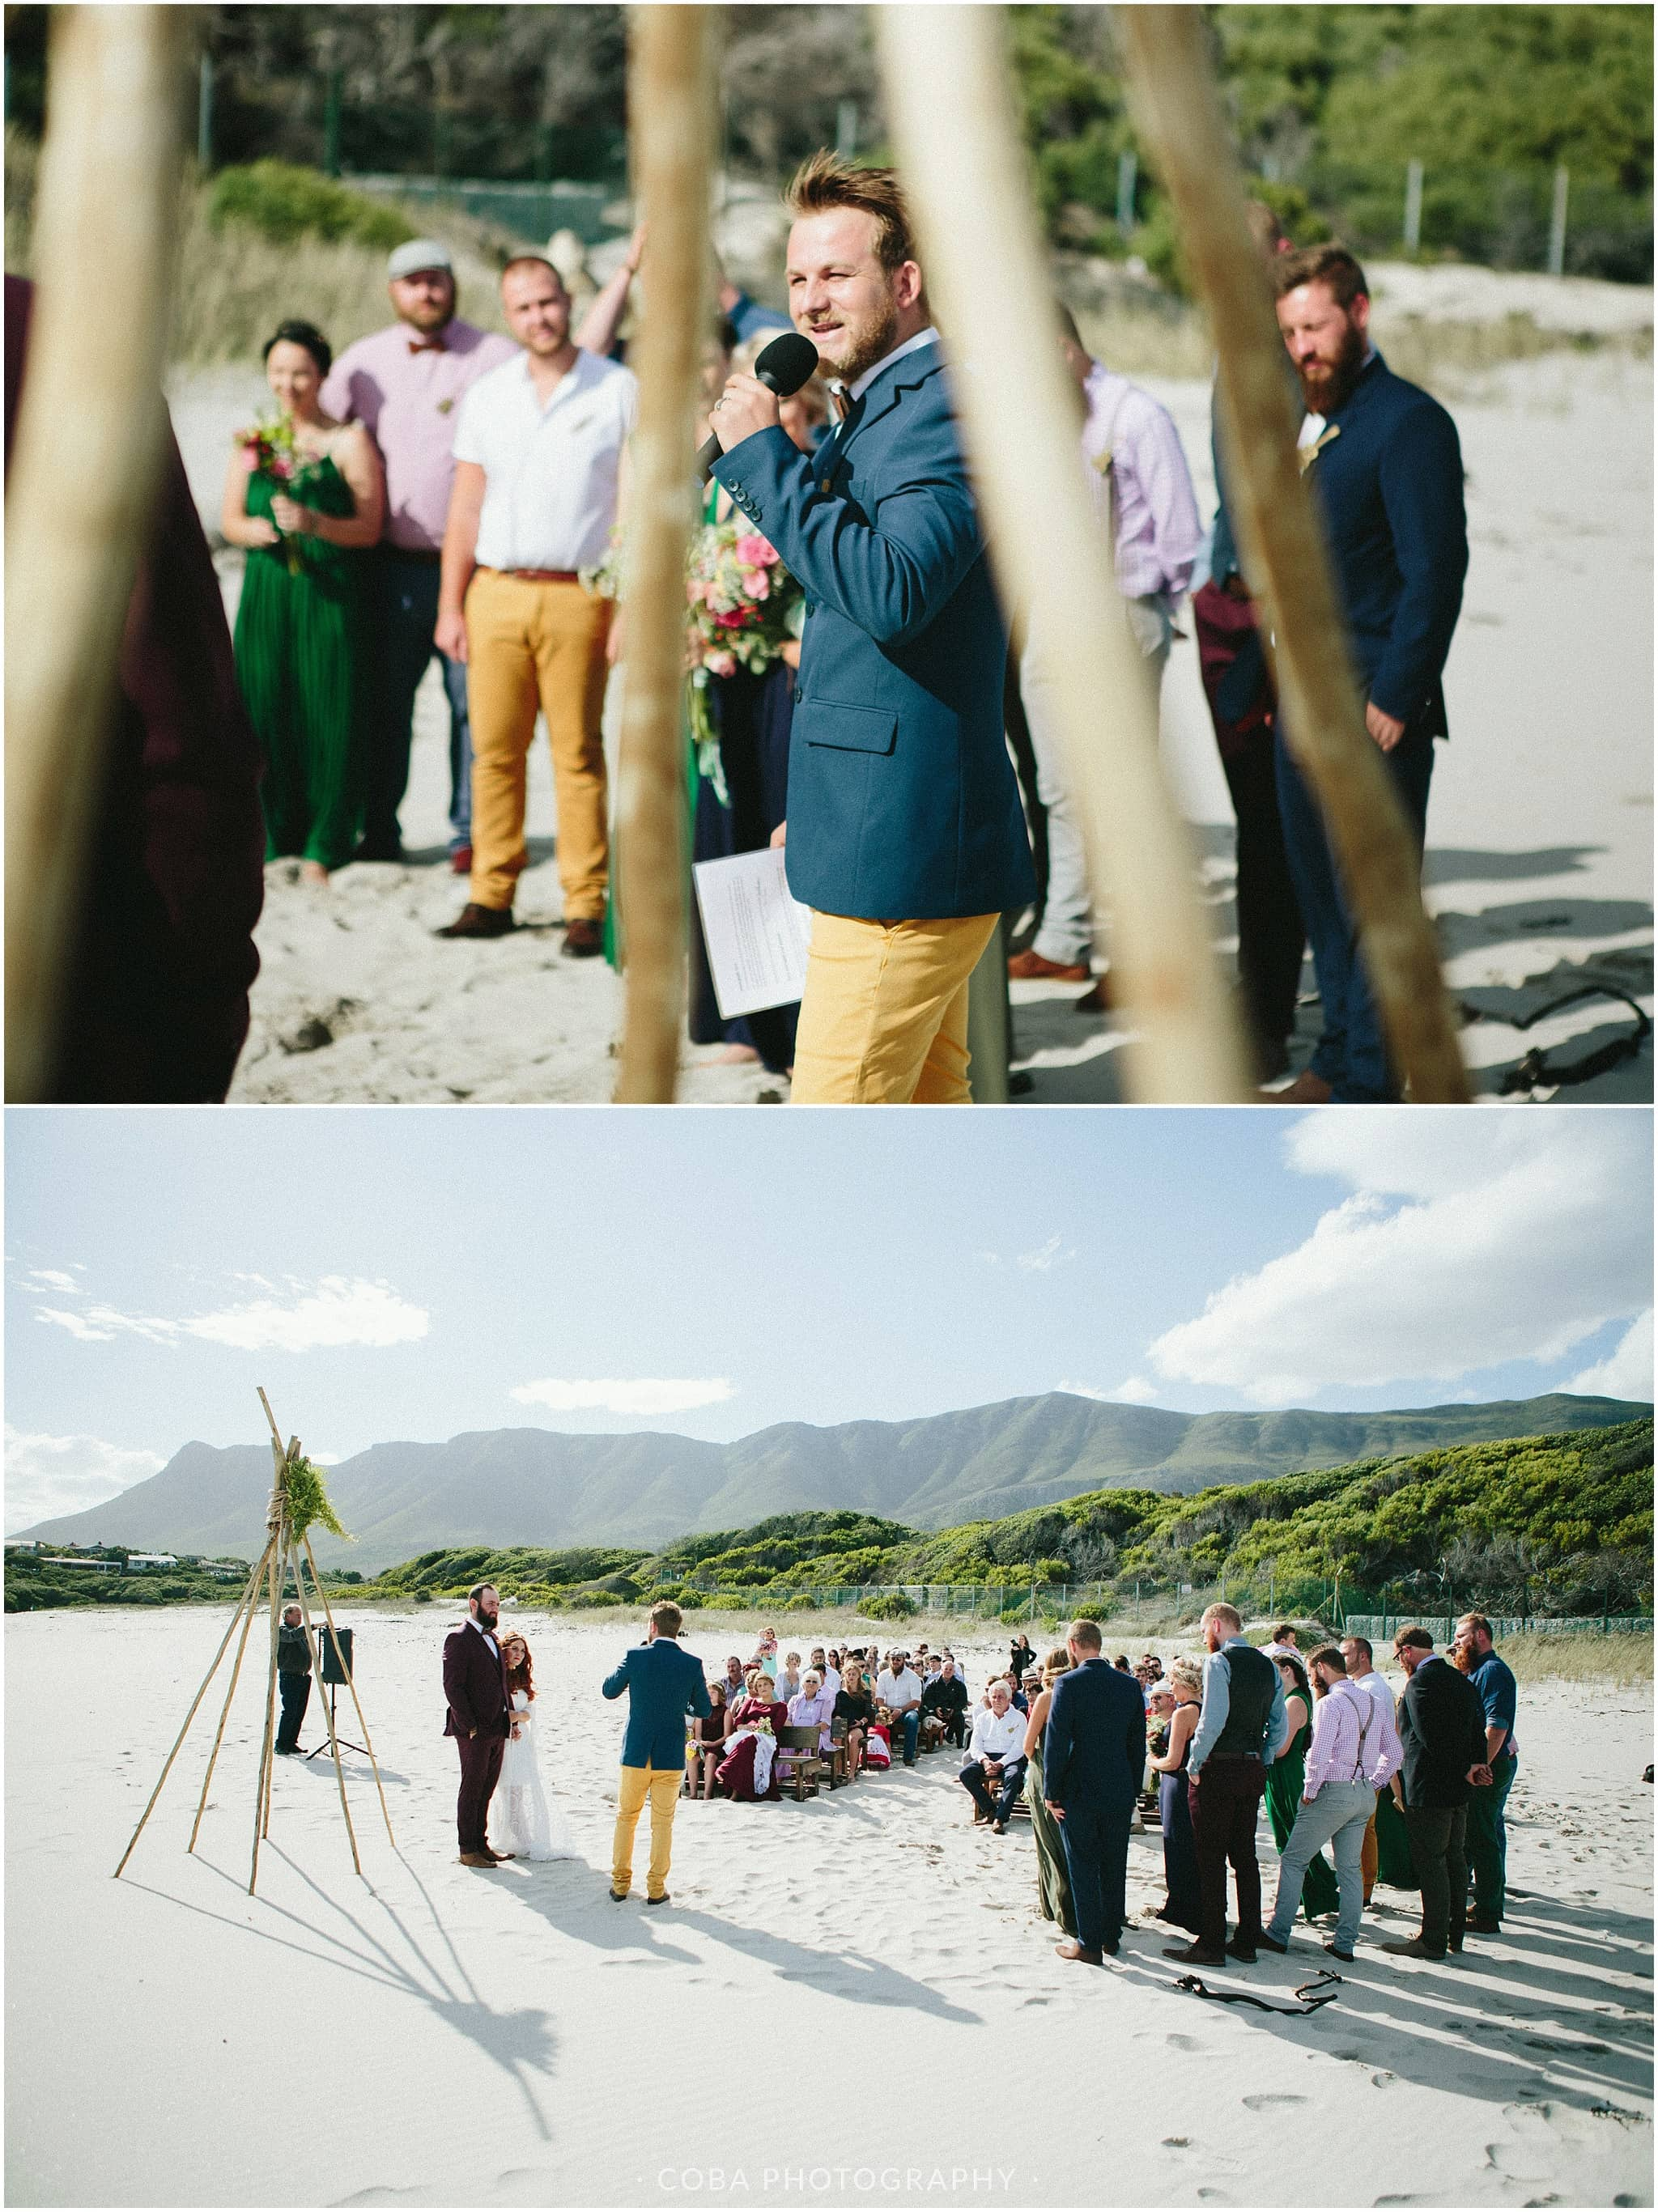 Conrad & Mareli - Boho beach wedding - ceremony (8)